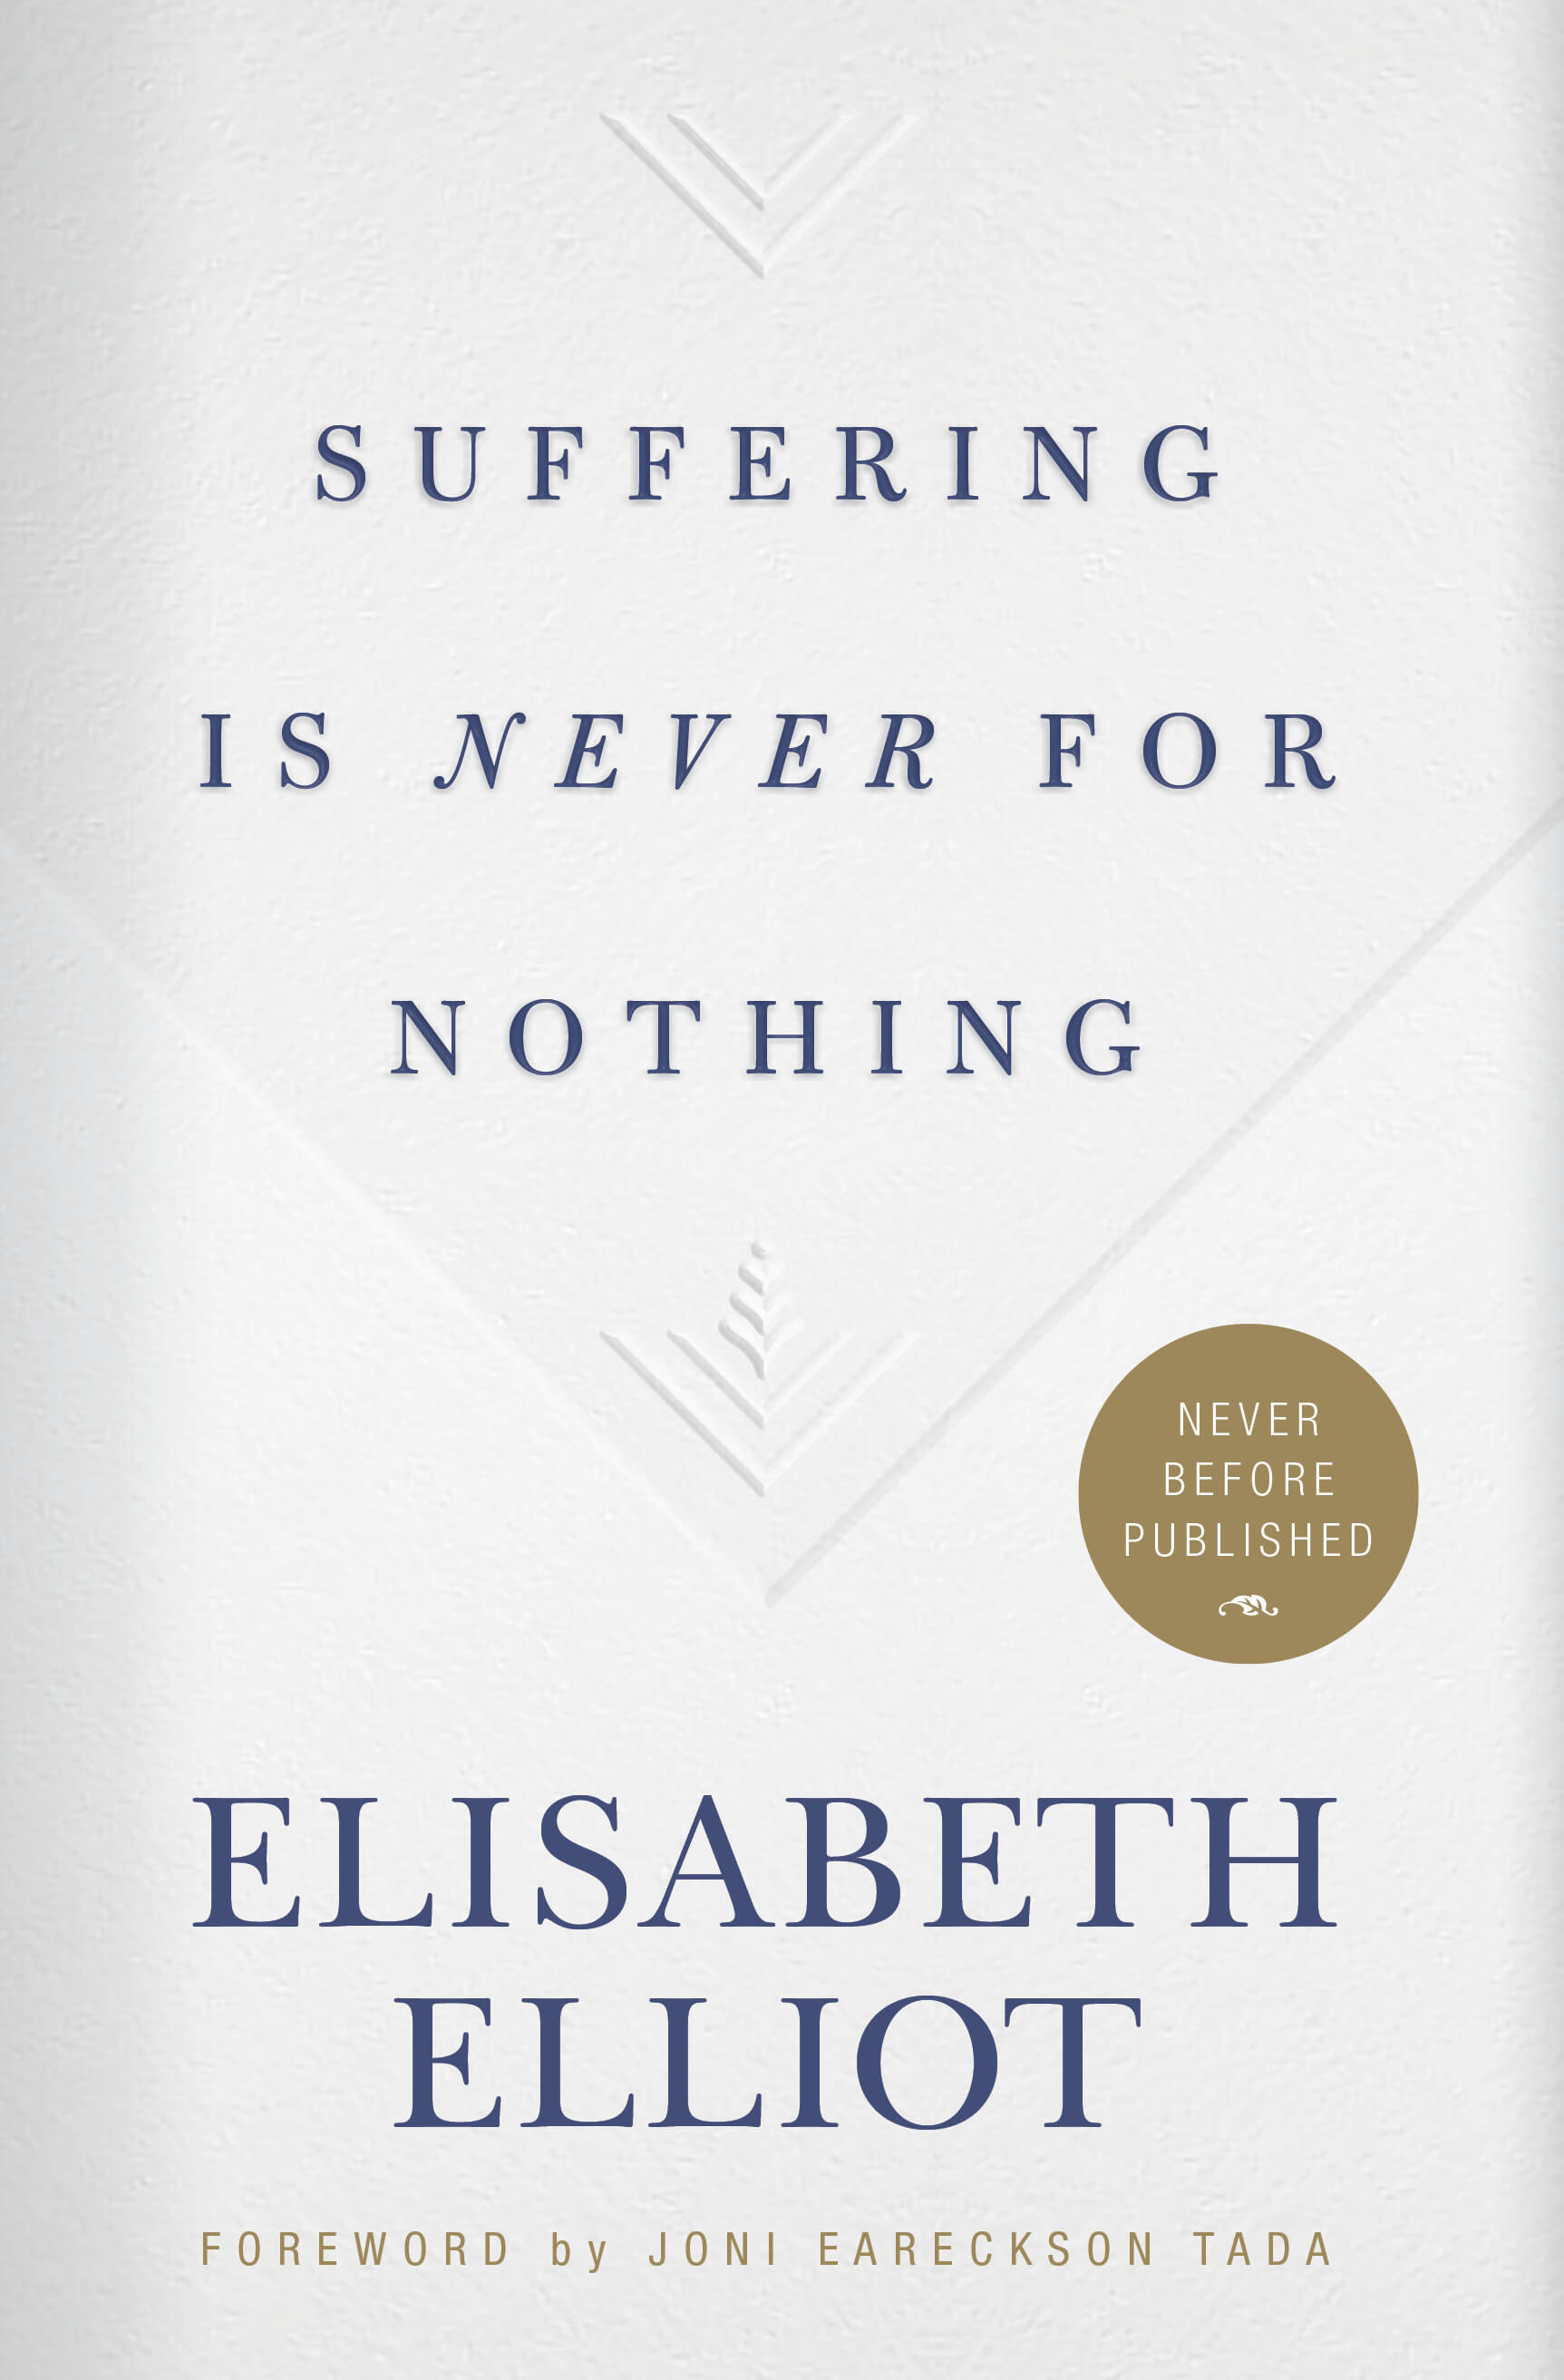 Buy your copy of Suffering Is Never for Nothing in the Bible Gateway Store where you'll enjoy low prices every day